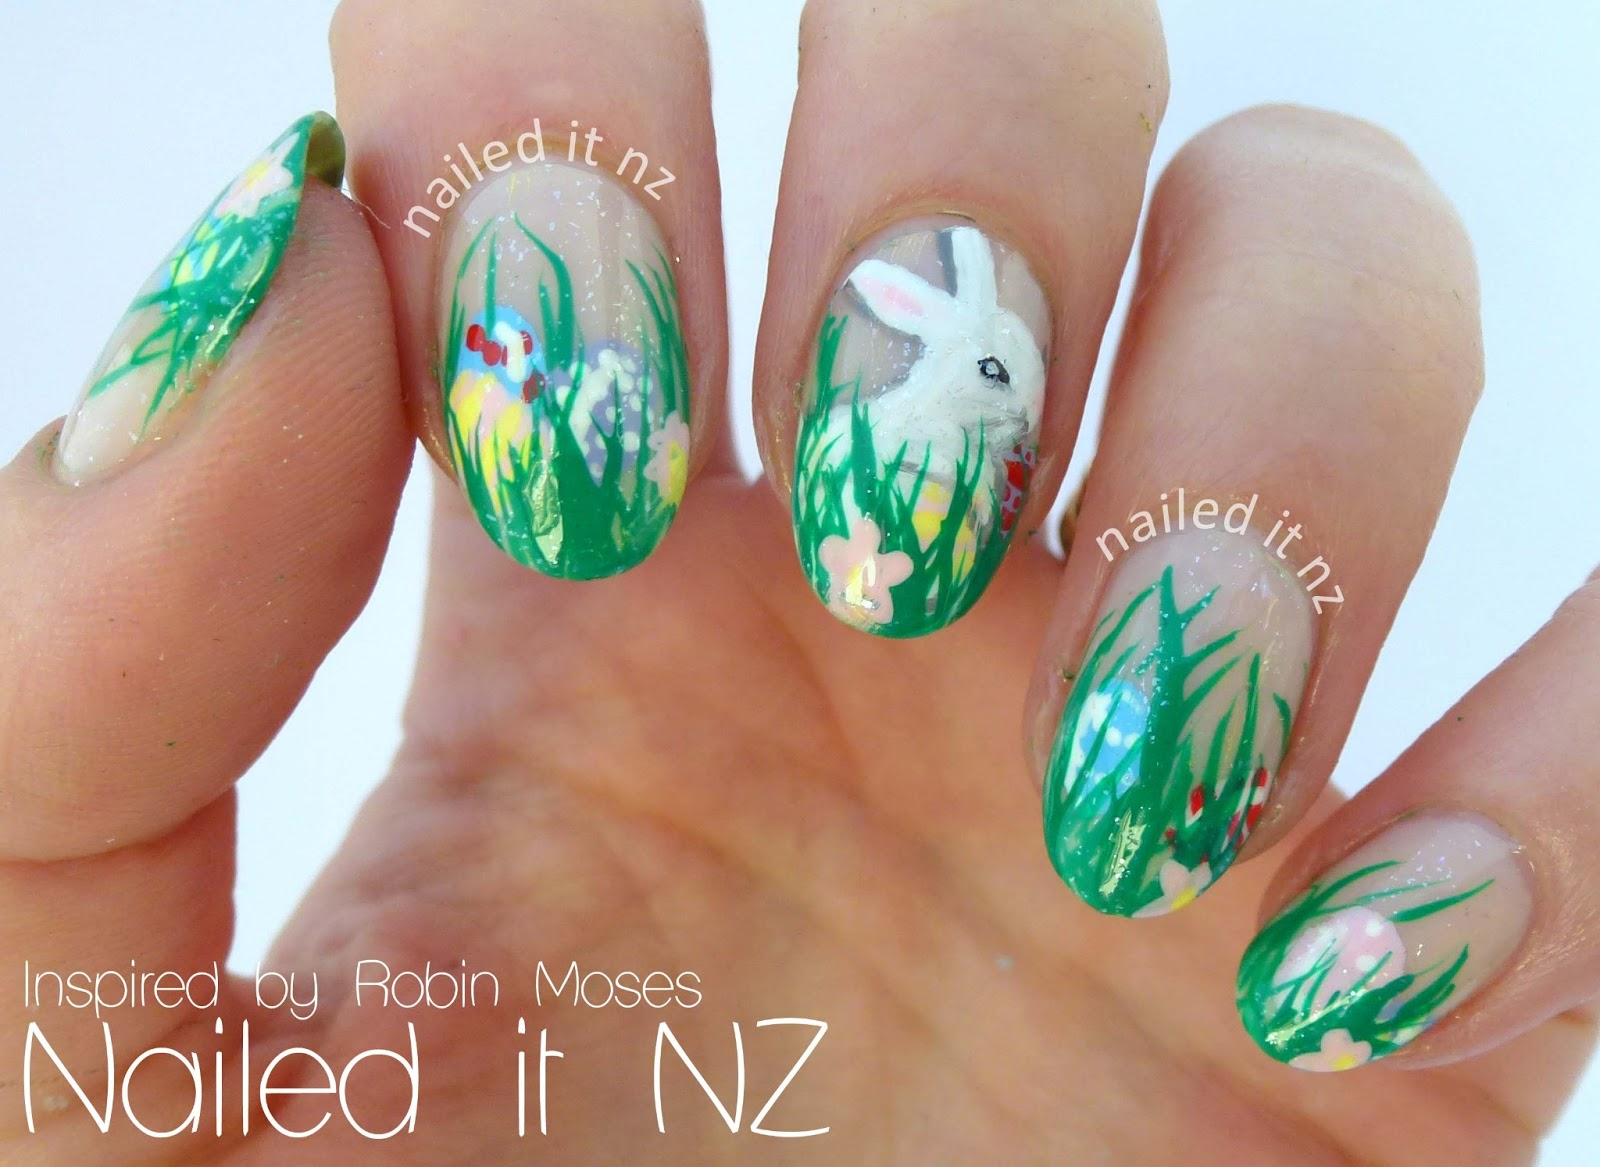 Easter nail art inspired by robin moses nailed it nz prinsesfo Image collections